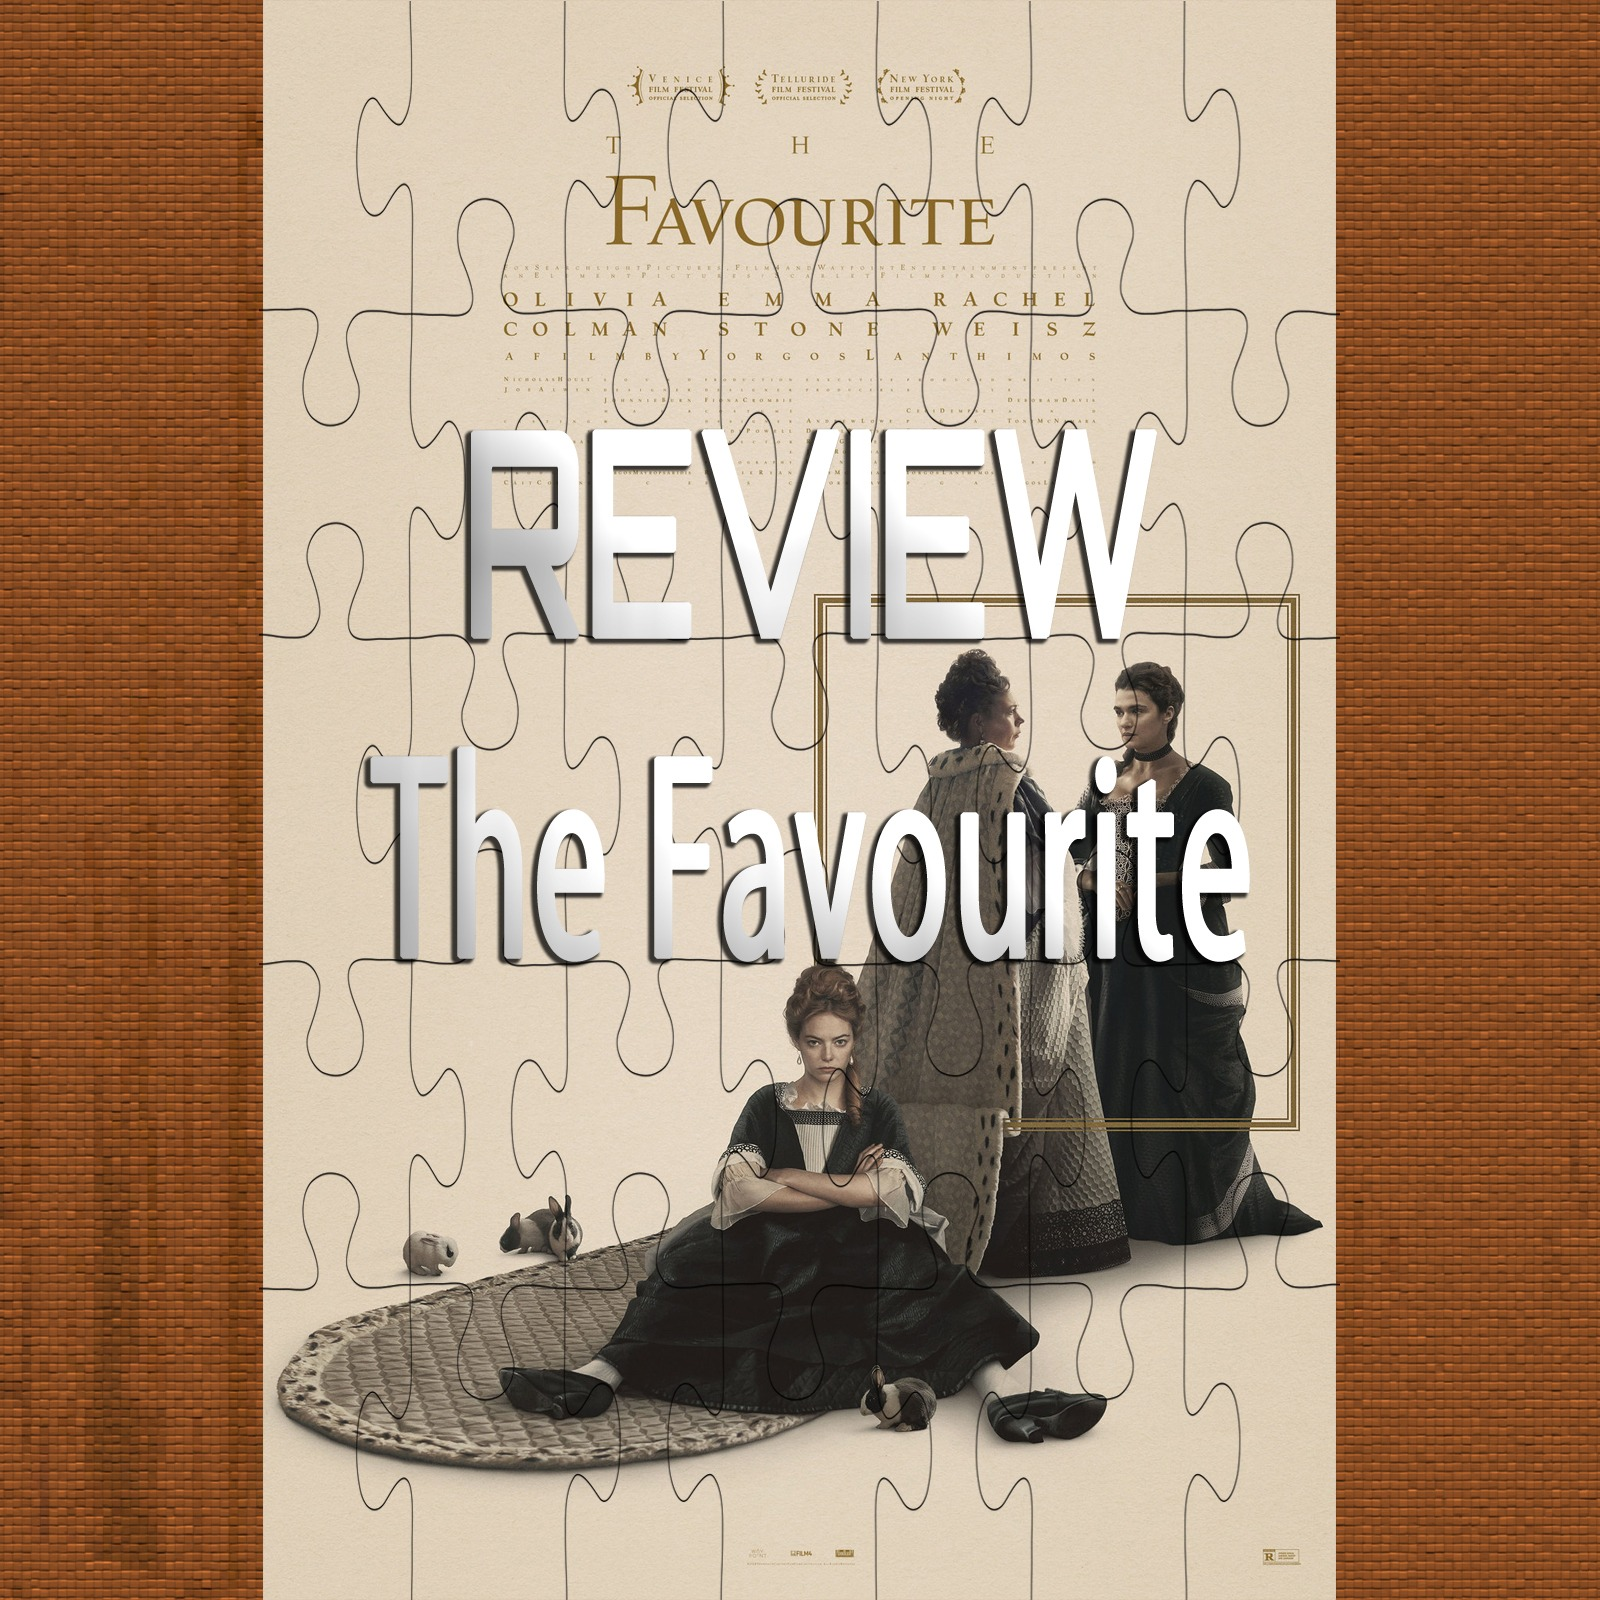 The Favourite (Review)